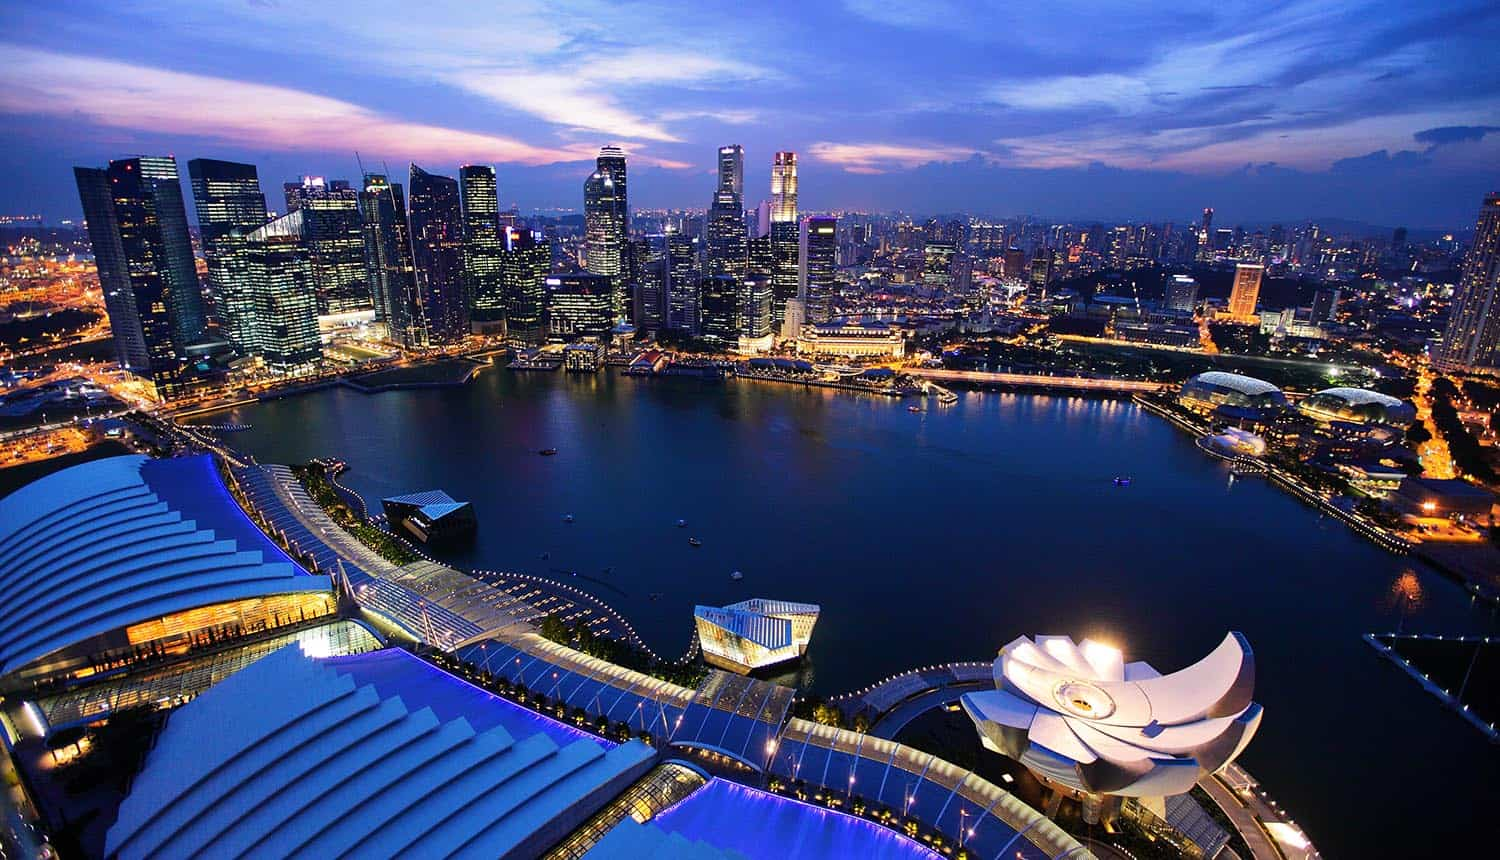 Singapore city skyline at night showing digital services driving identity management